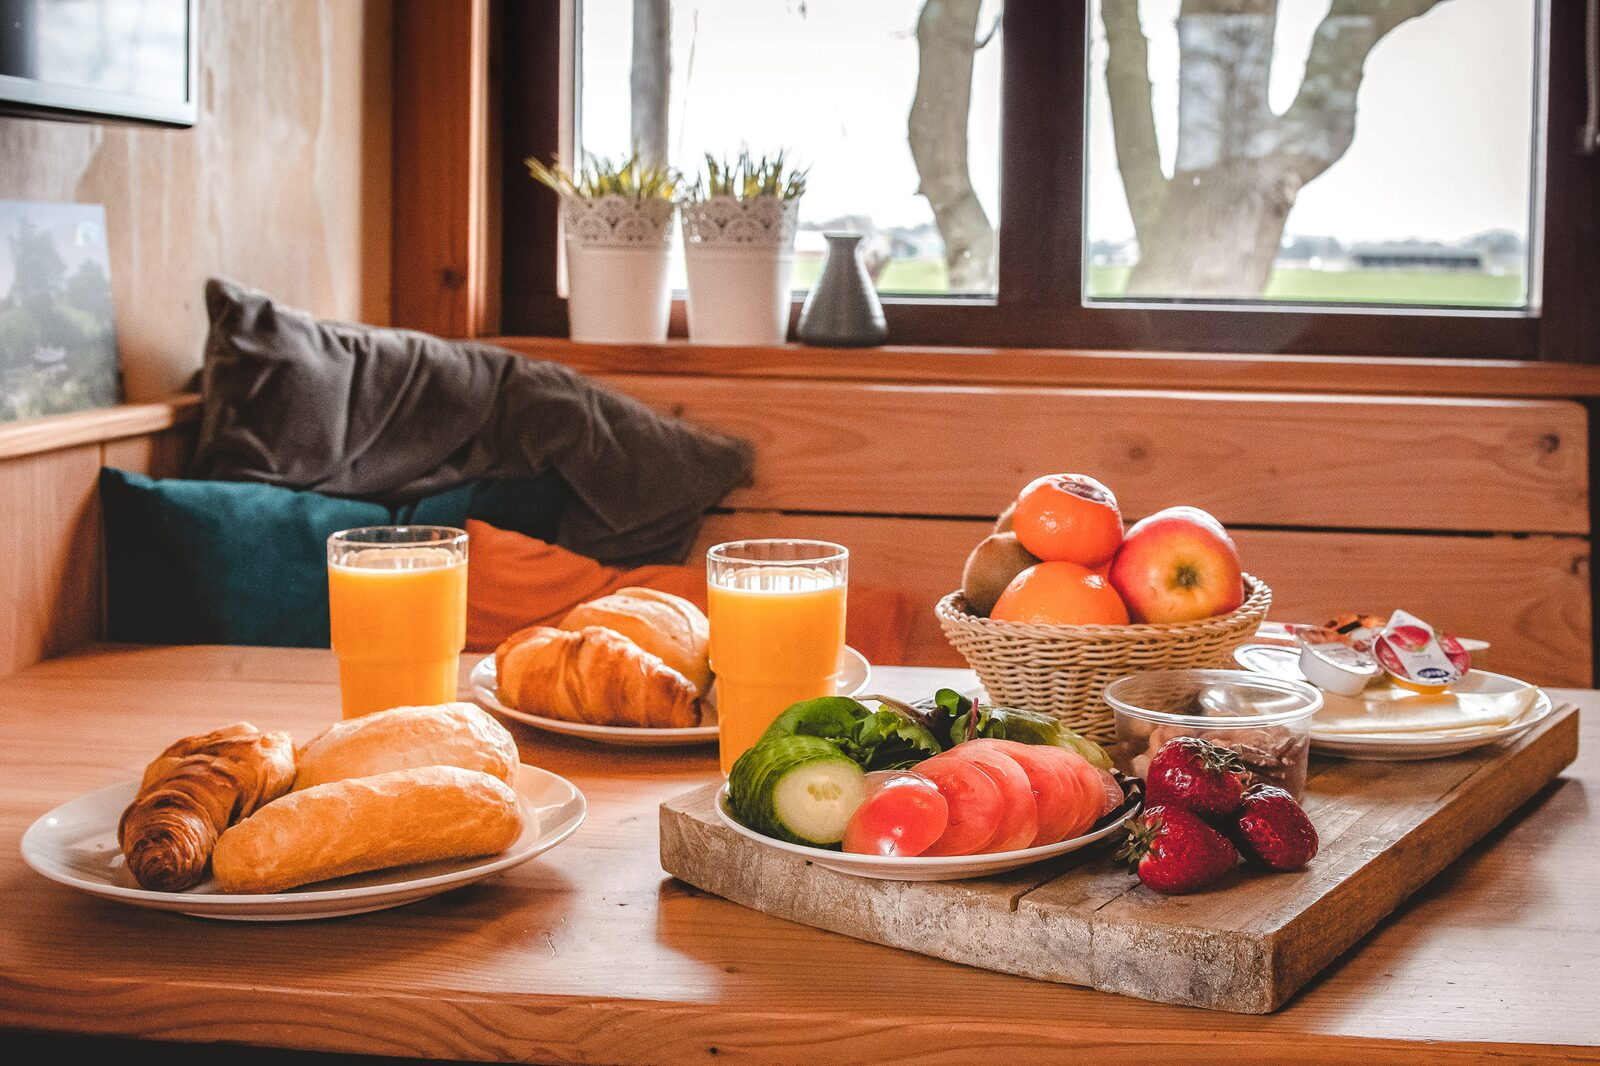 Breakfast service at your accommodation